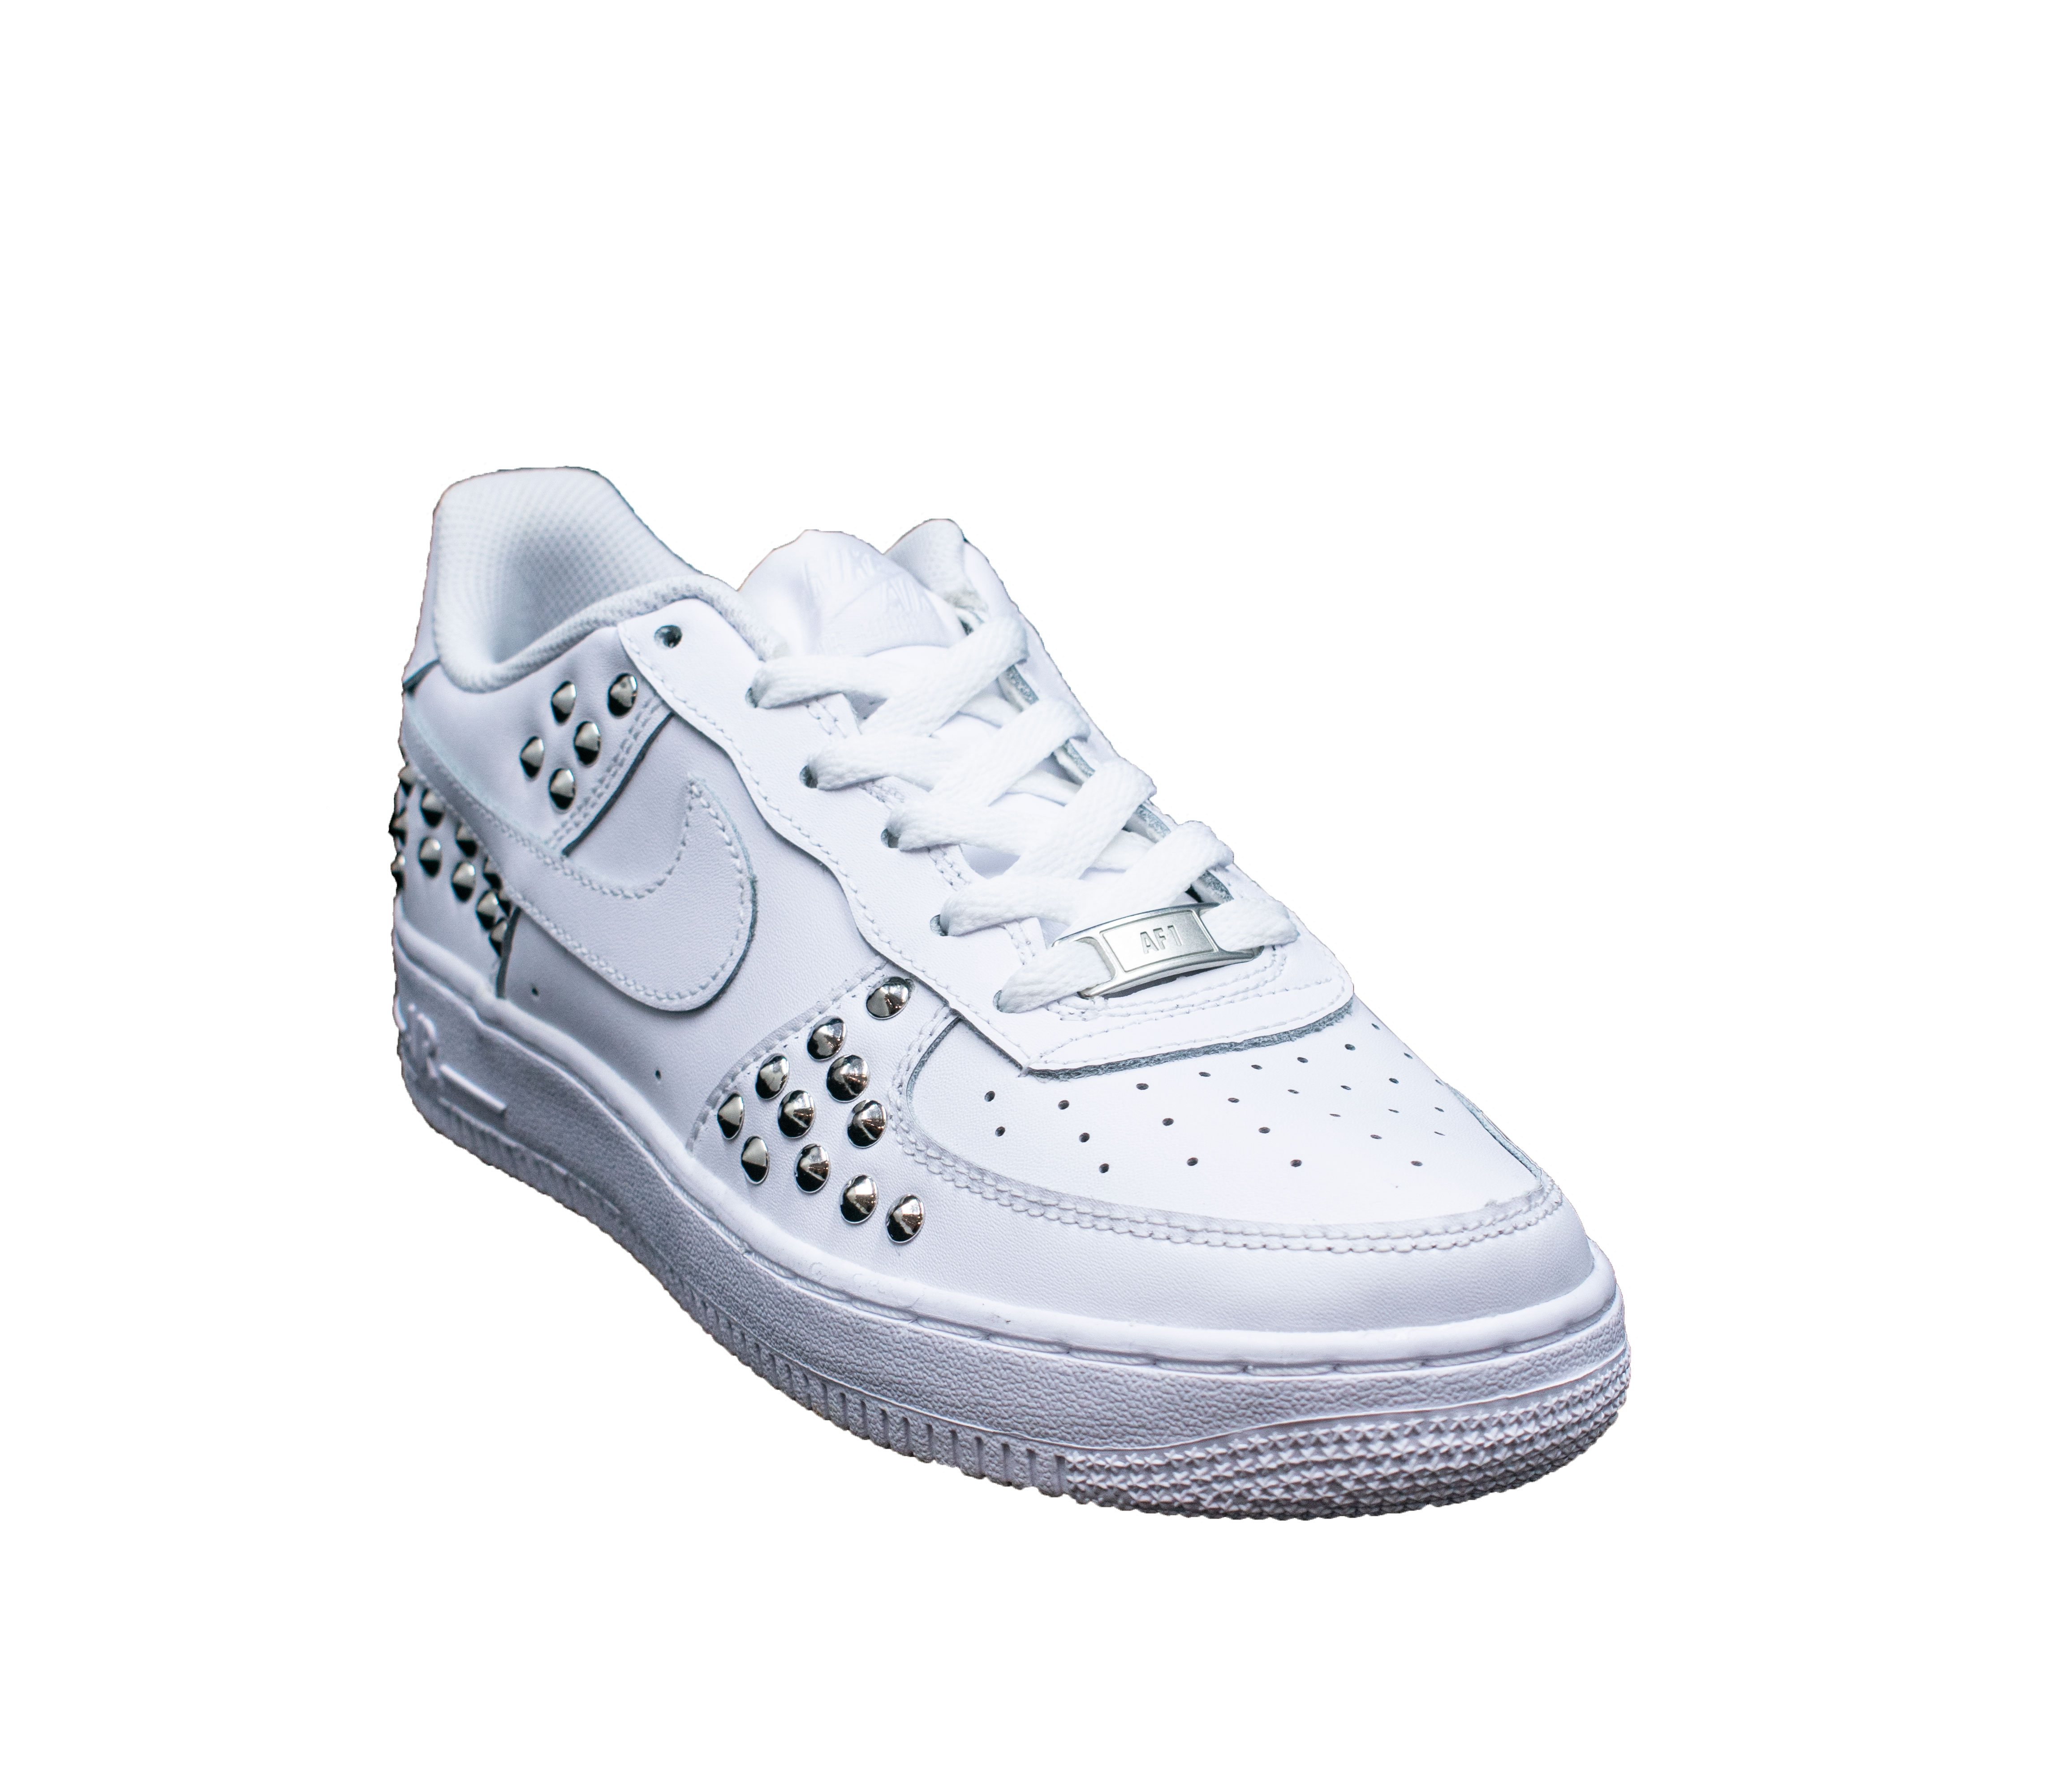 Pierrot Nike air force 1 07 off white Pierrot Calzature